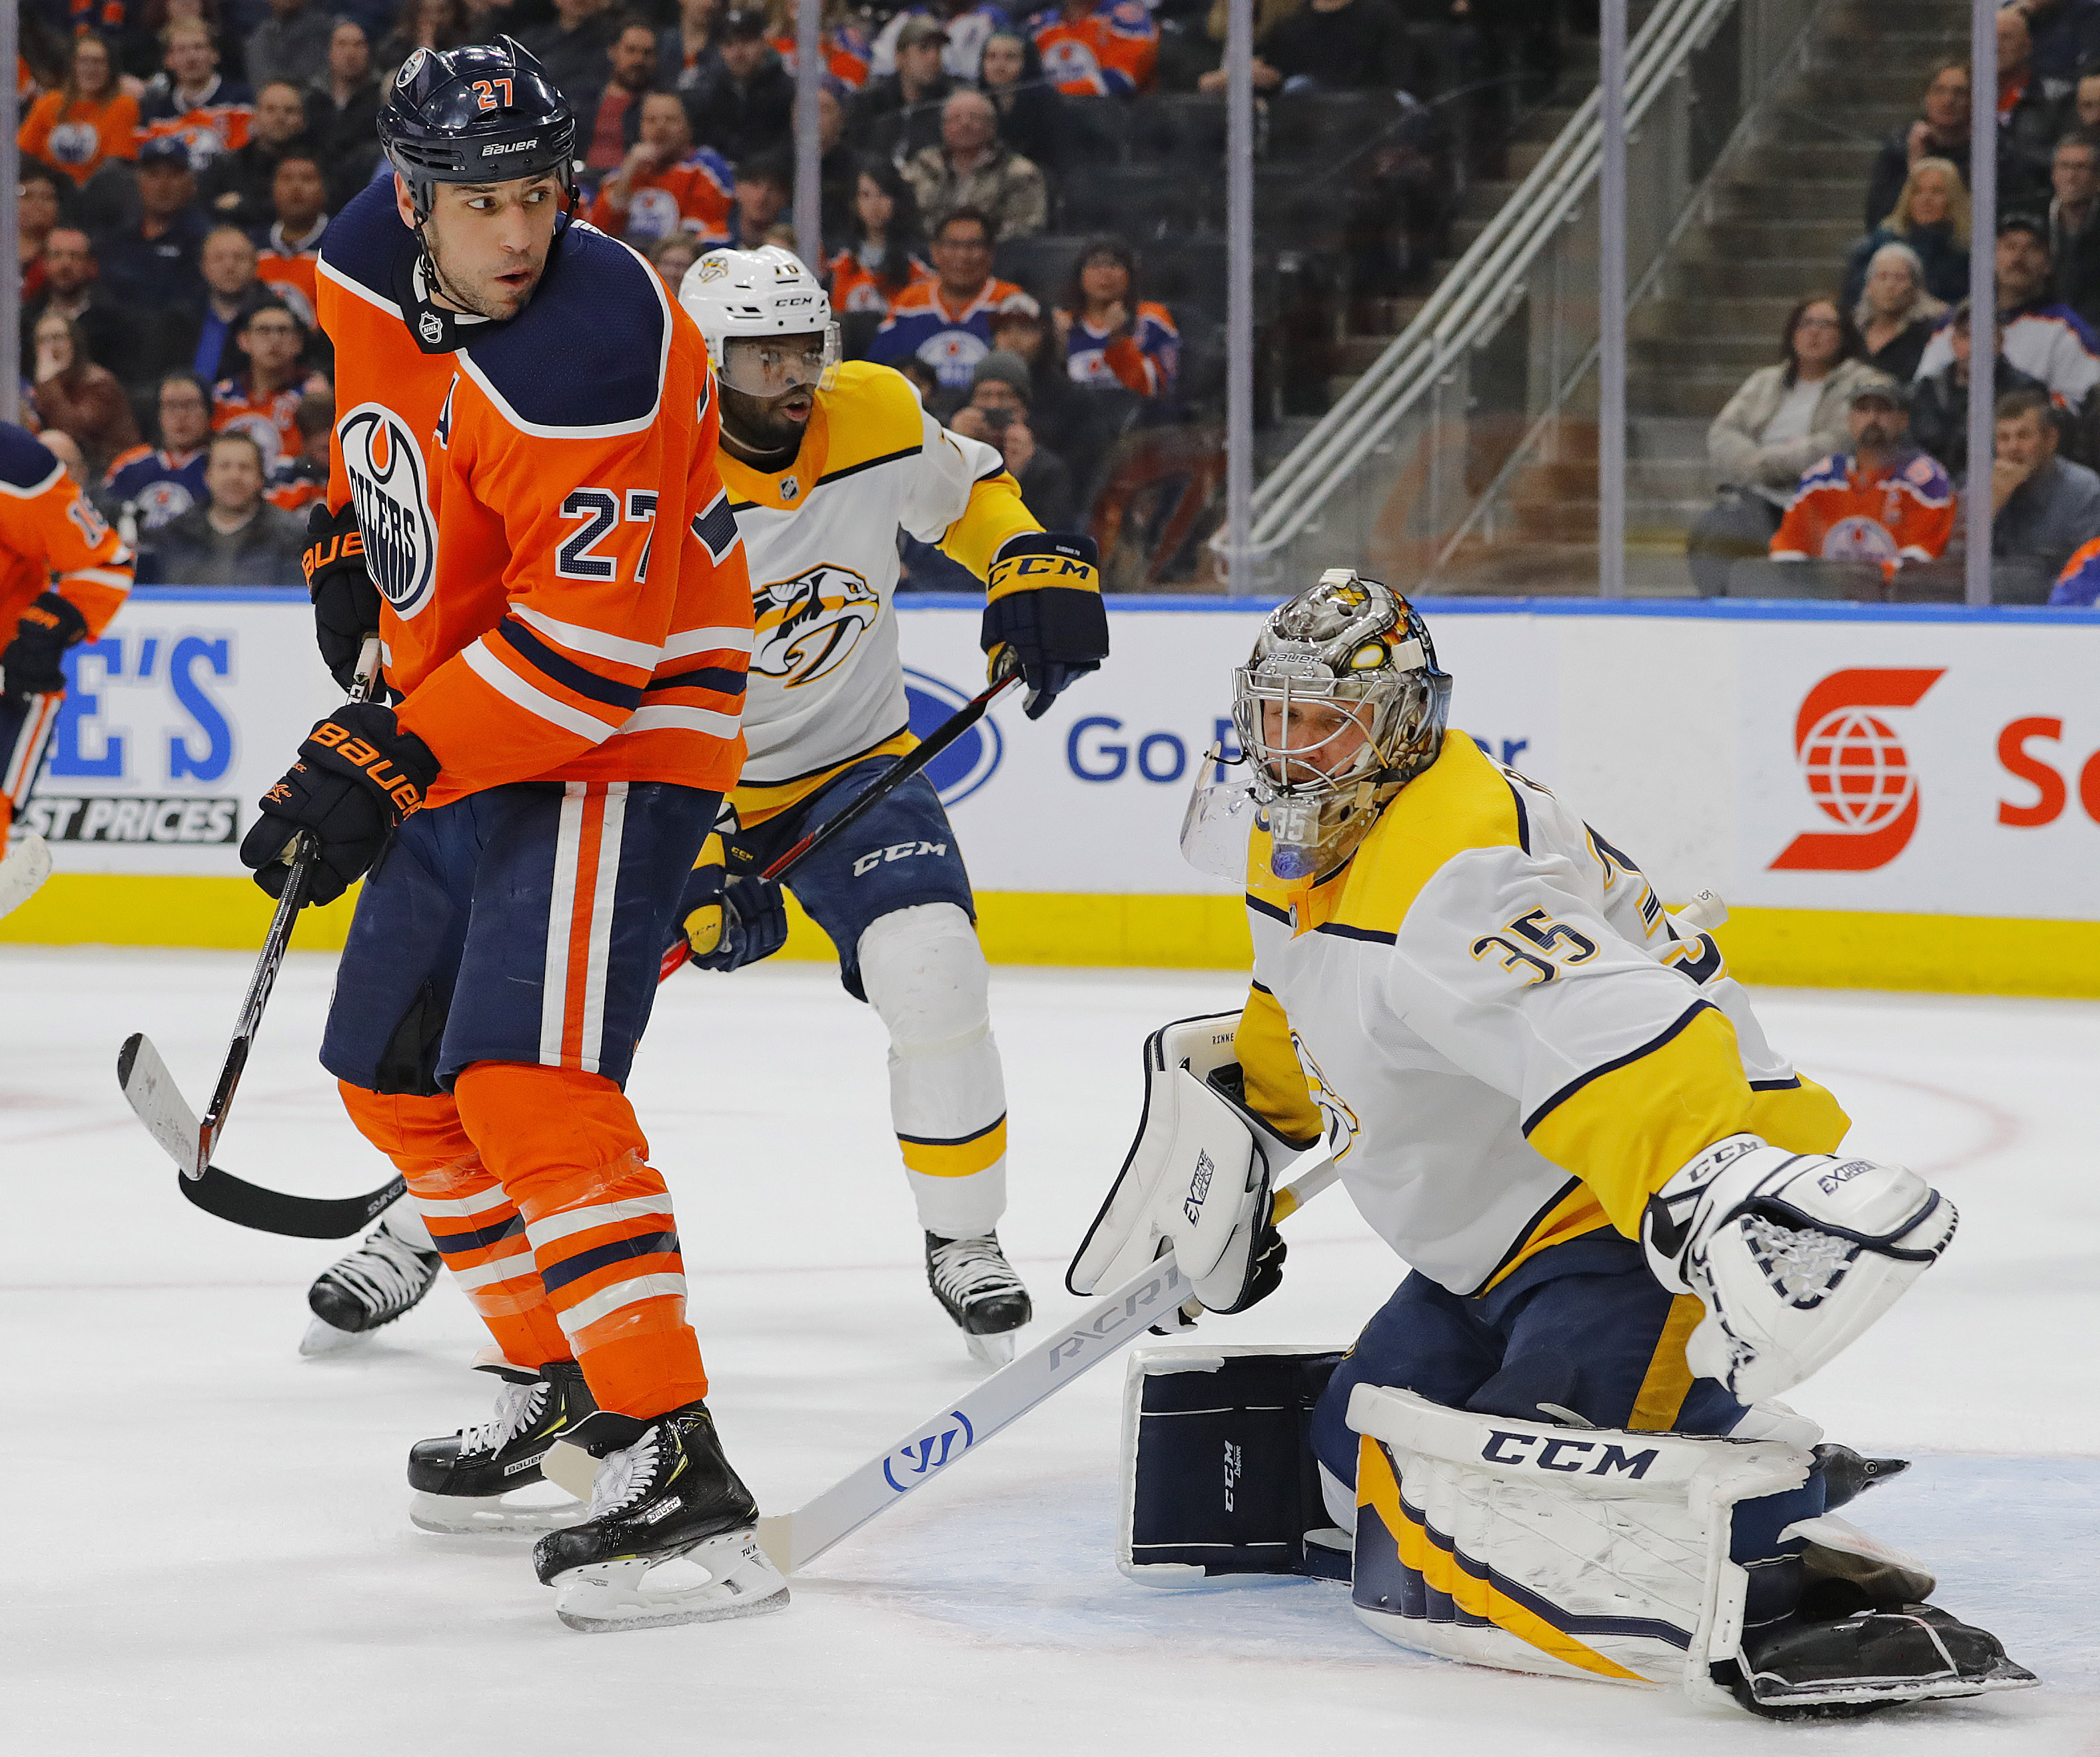 Oilers Need More From Secondary Scorers